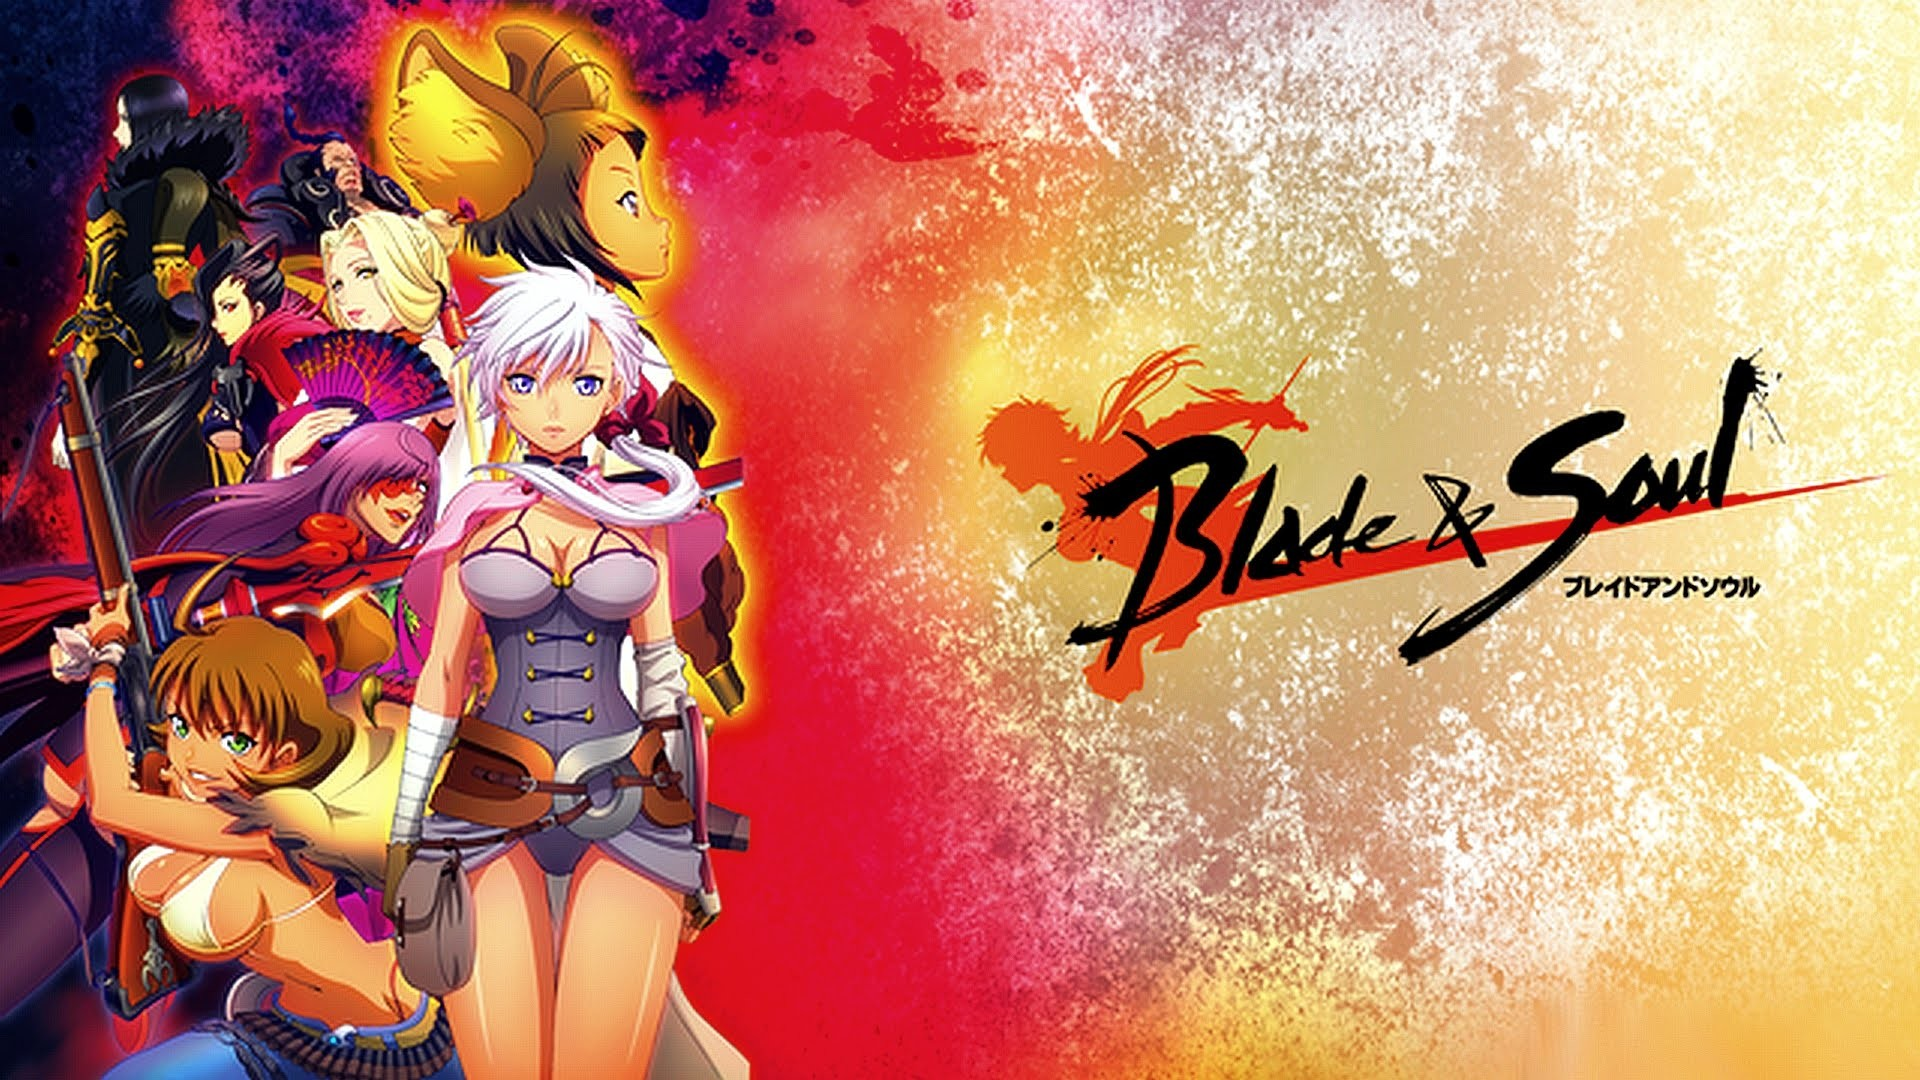 Hello Kitty Pictures Glitter Wallpaper. 2017 Blade And Soul Anime Wallpaper